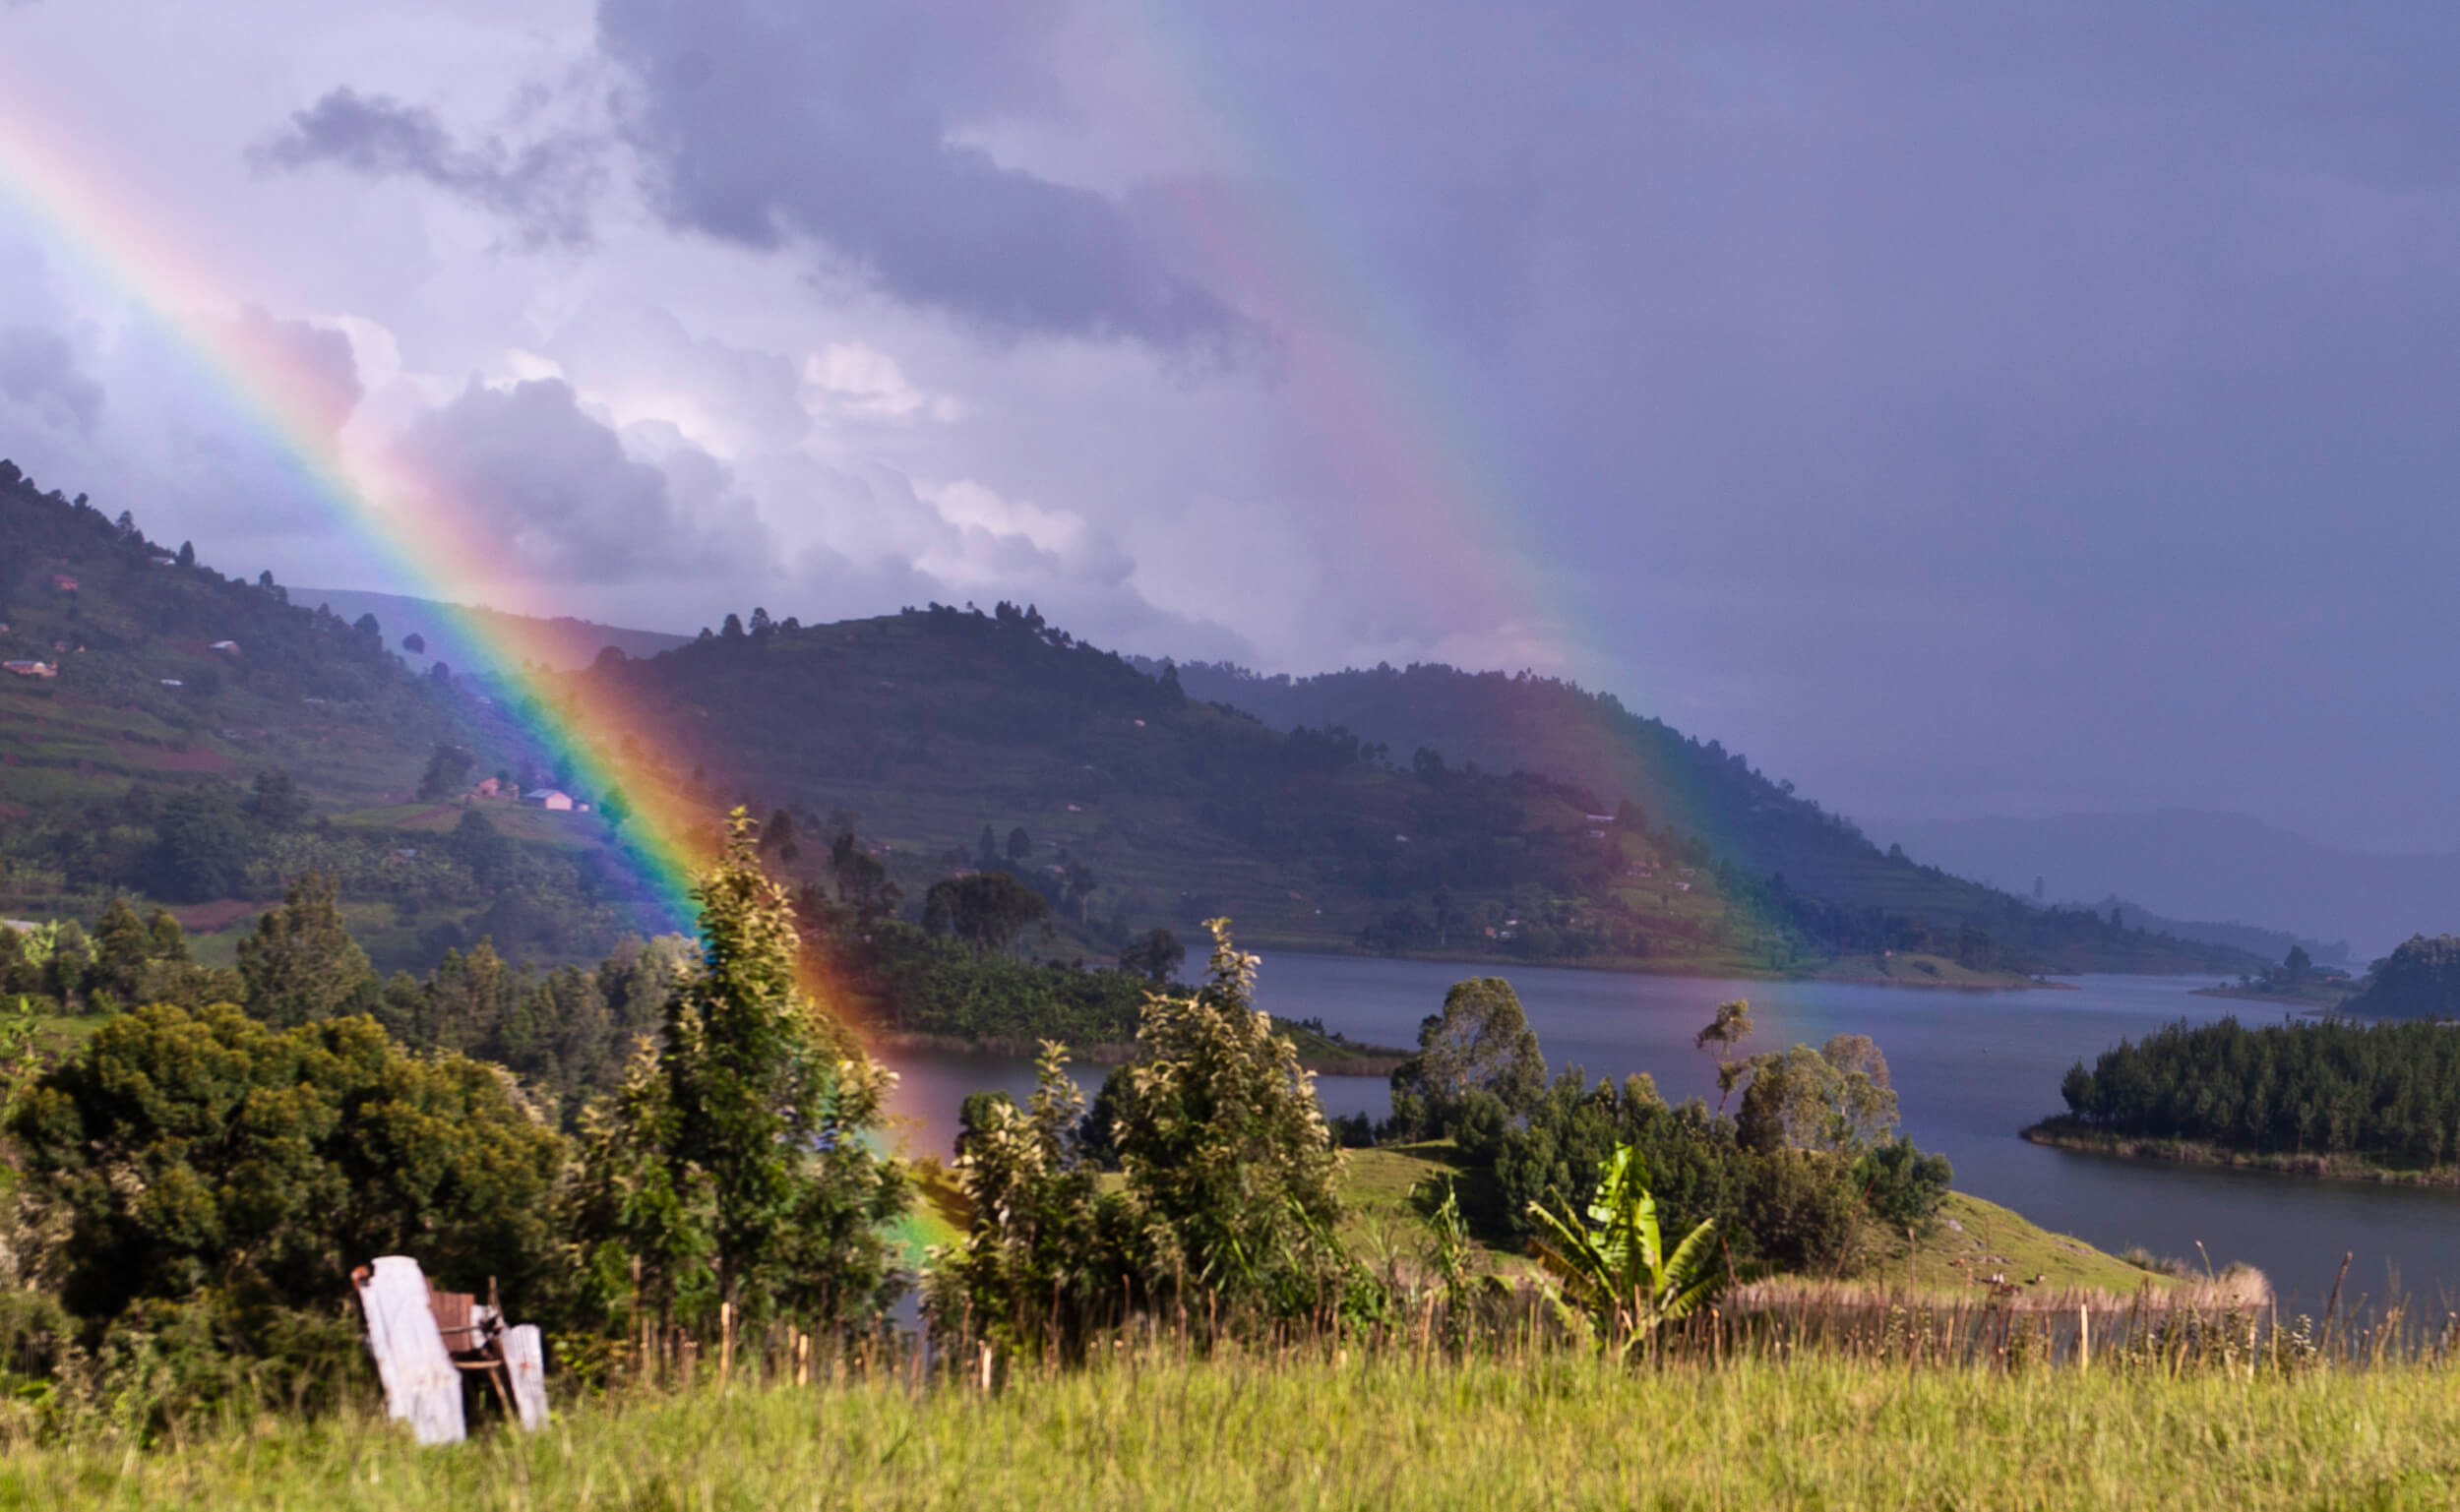 Rainbows at Bunyonyi